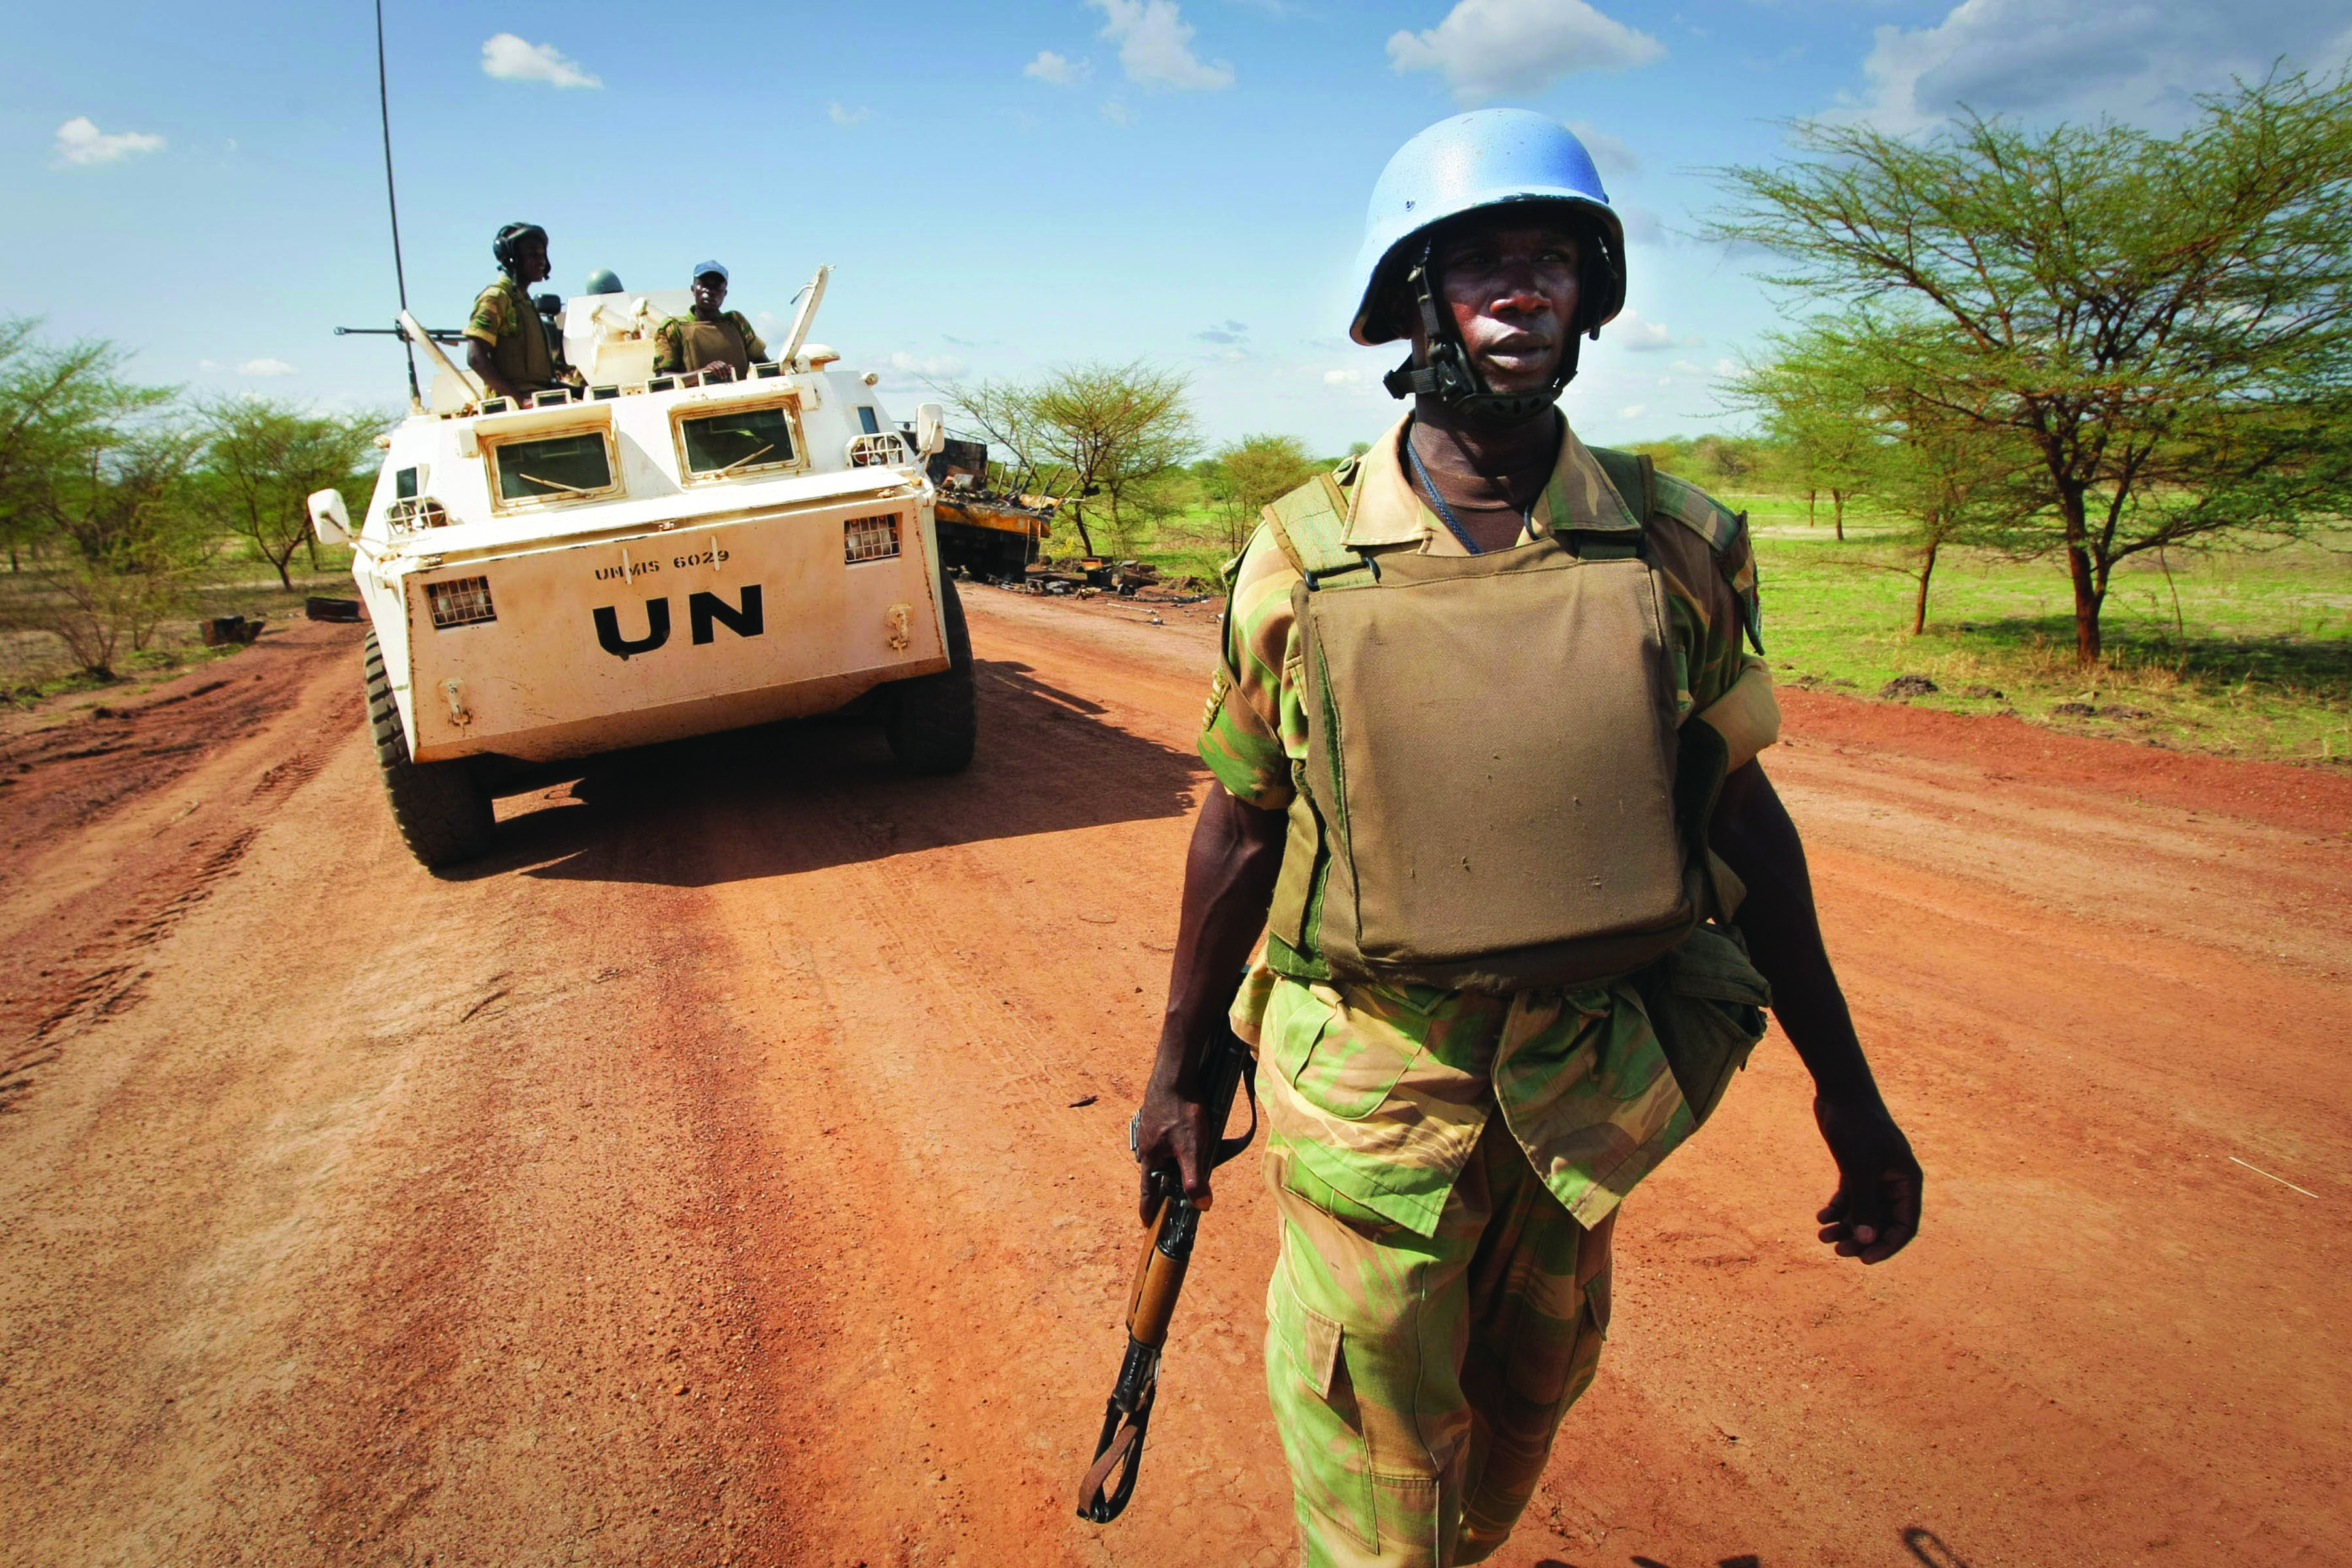 Key to stabilising Africa's future is financing its own security agenda